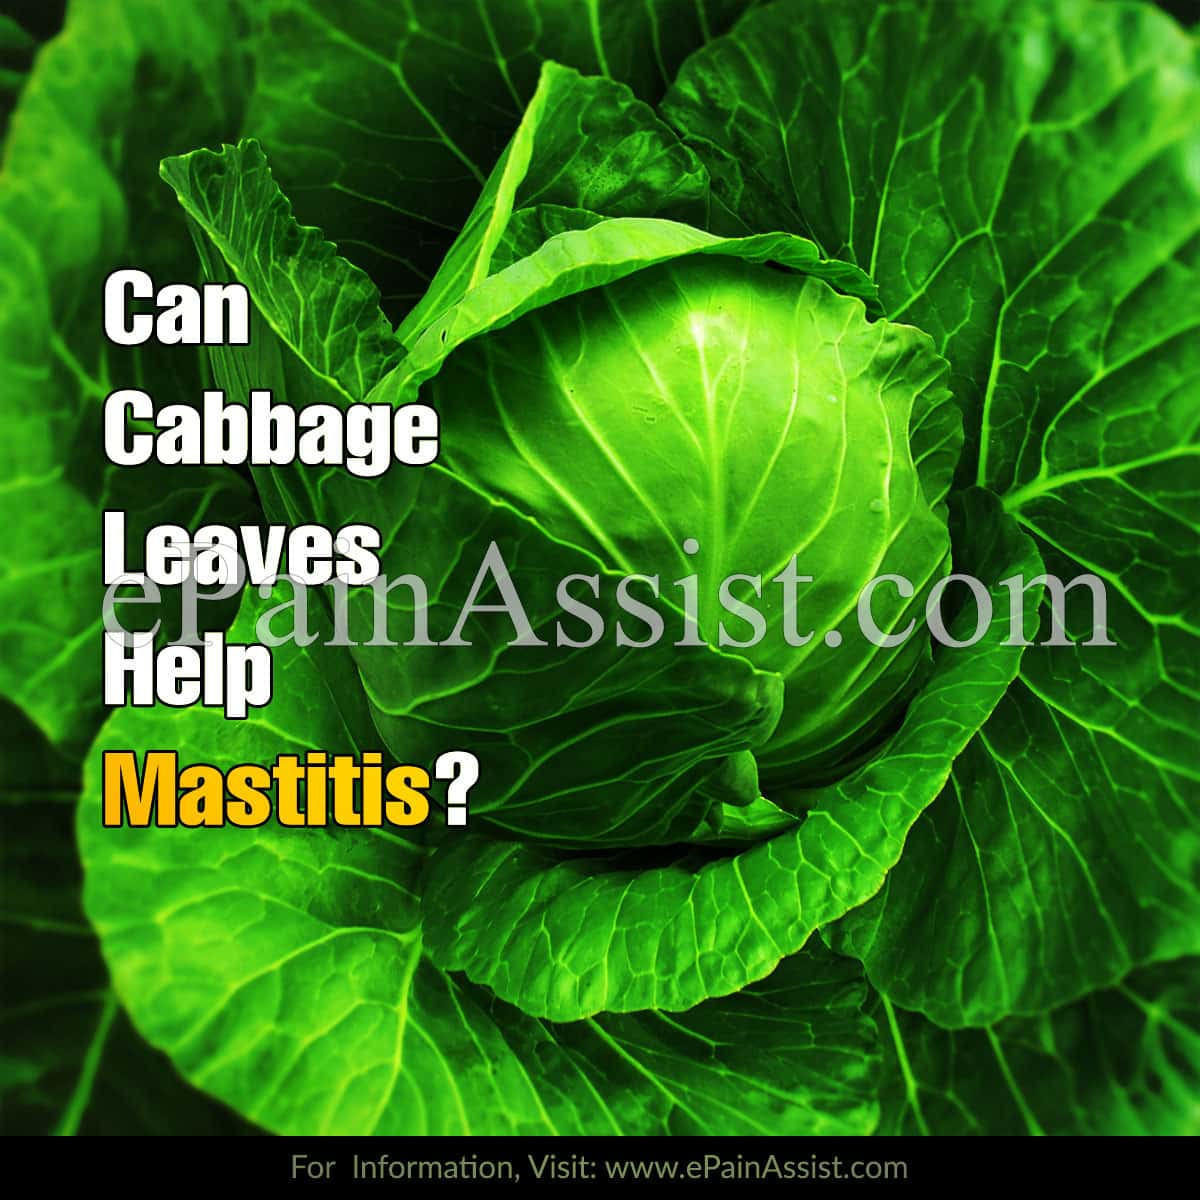 Can Cabbage Leaves Help Mastitis?